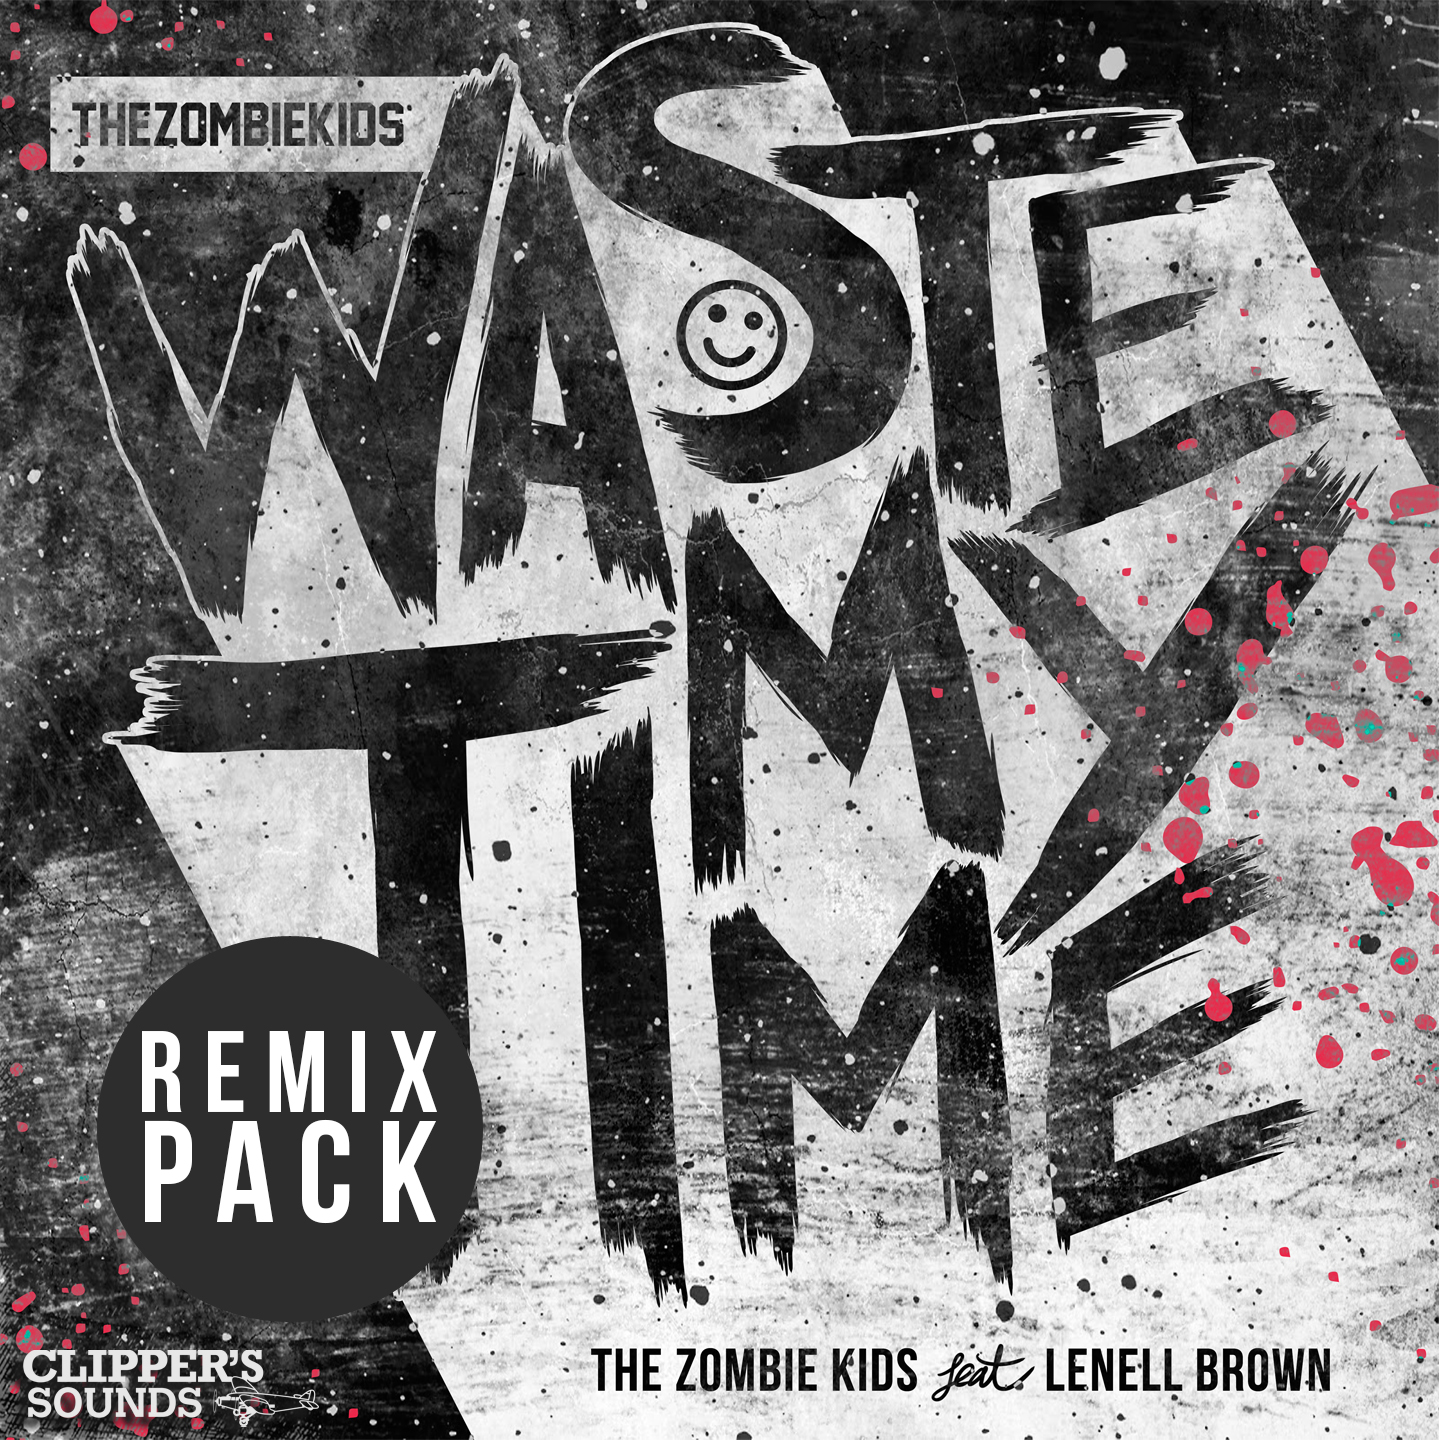 WASTE REMIXES